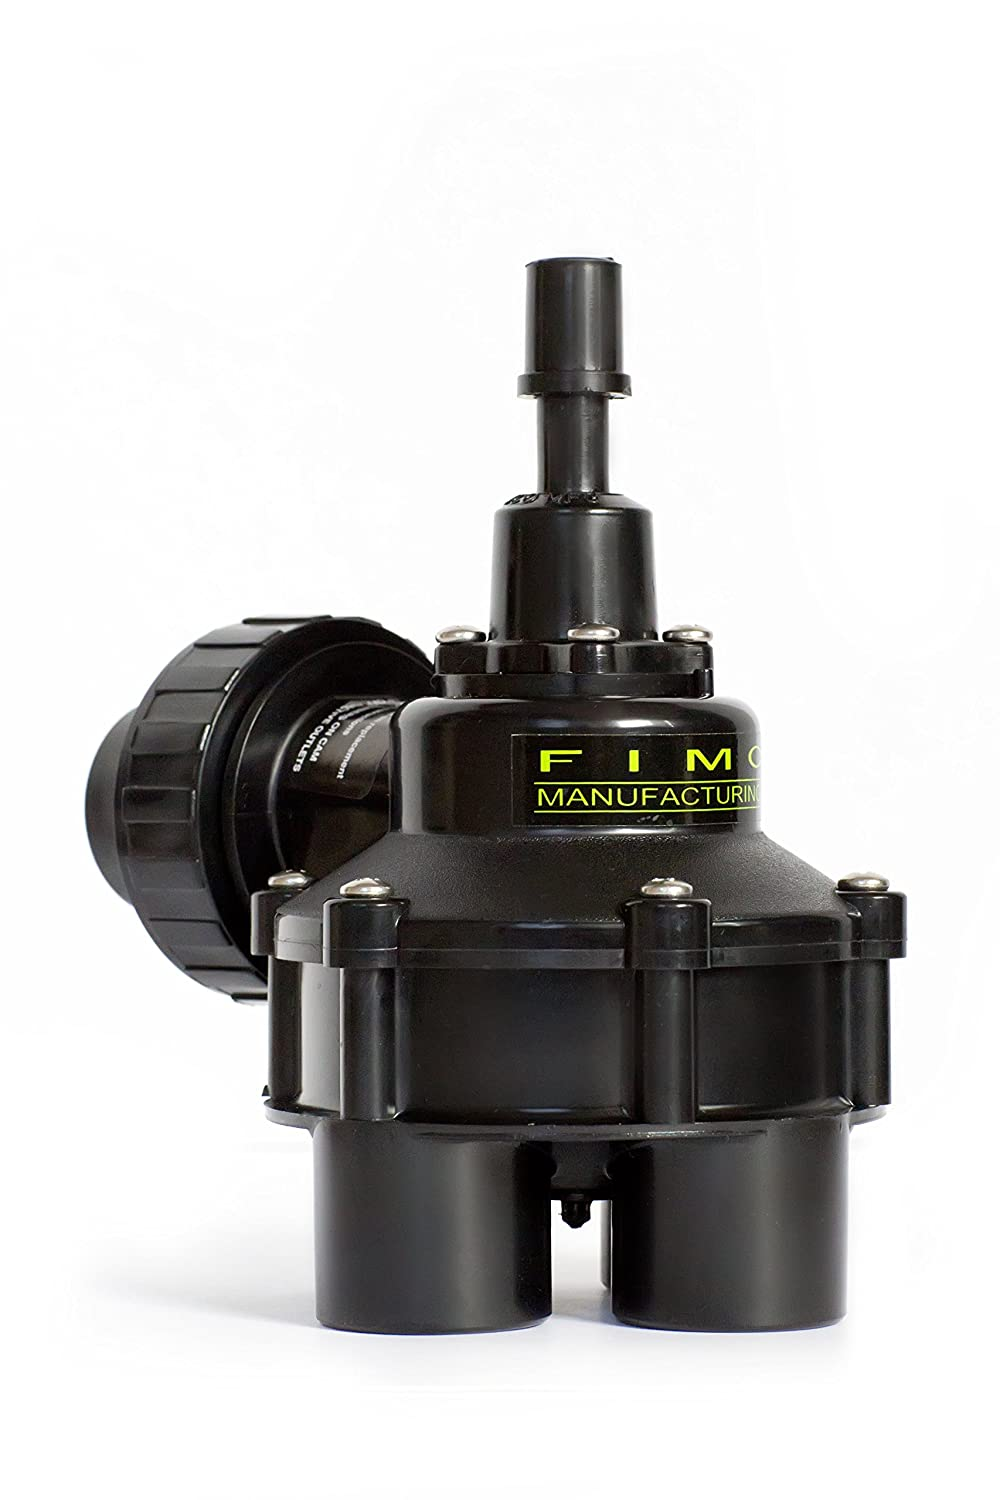 Fimco Manufacturing Mini 4-Outlet Irrigation Indexing Valve, 1-Inch, Black